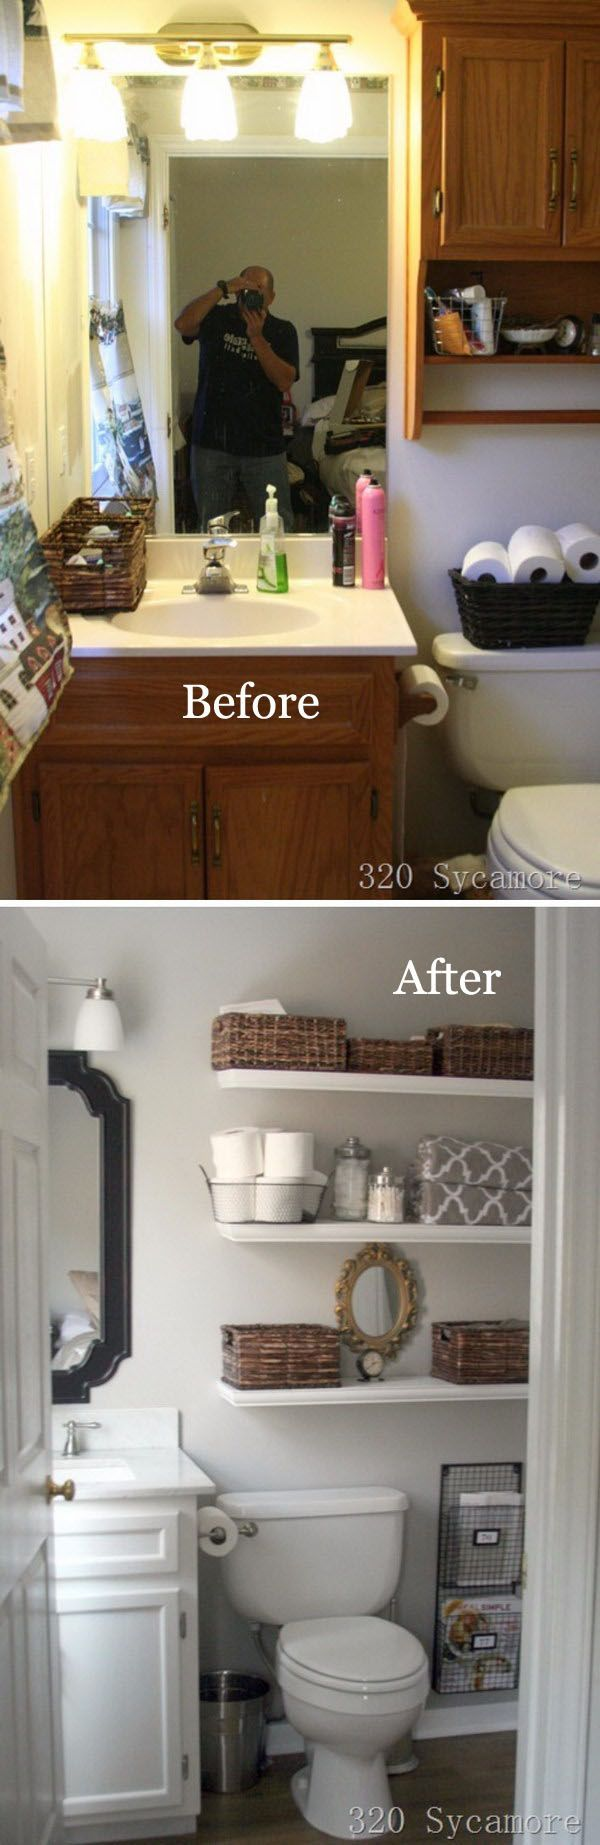 Bathroom Makeovers With White Cabinets 143 best time to remodel the kitchen & bath images on pinterest